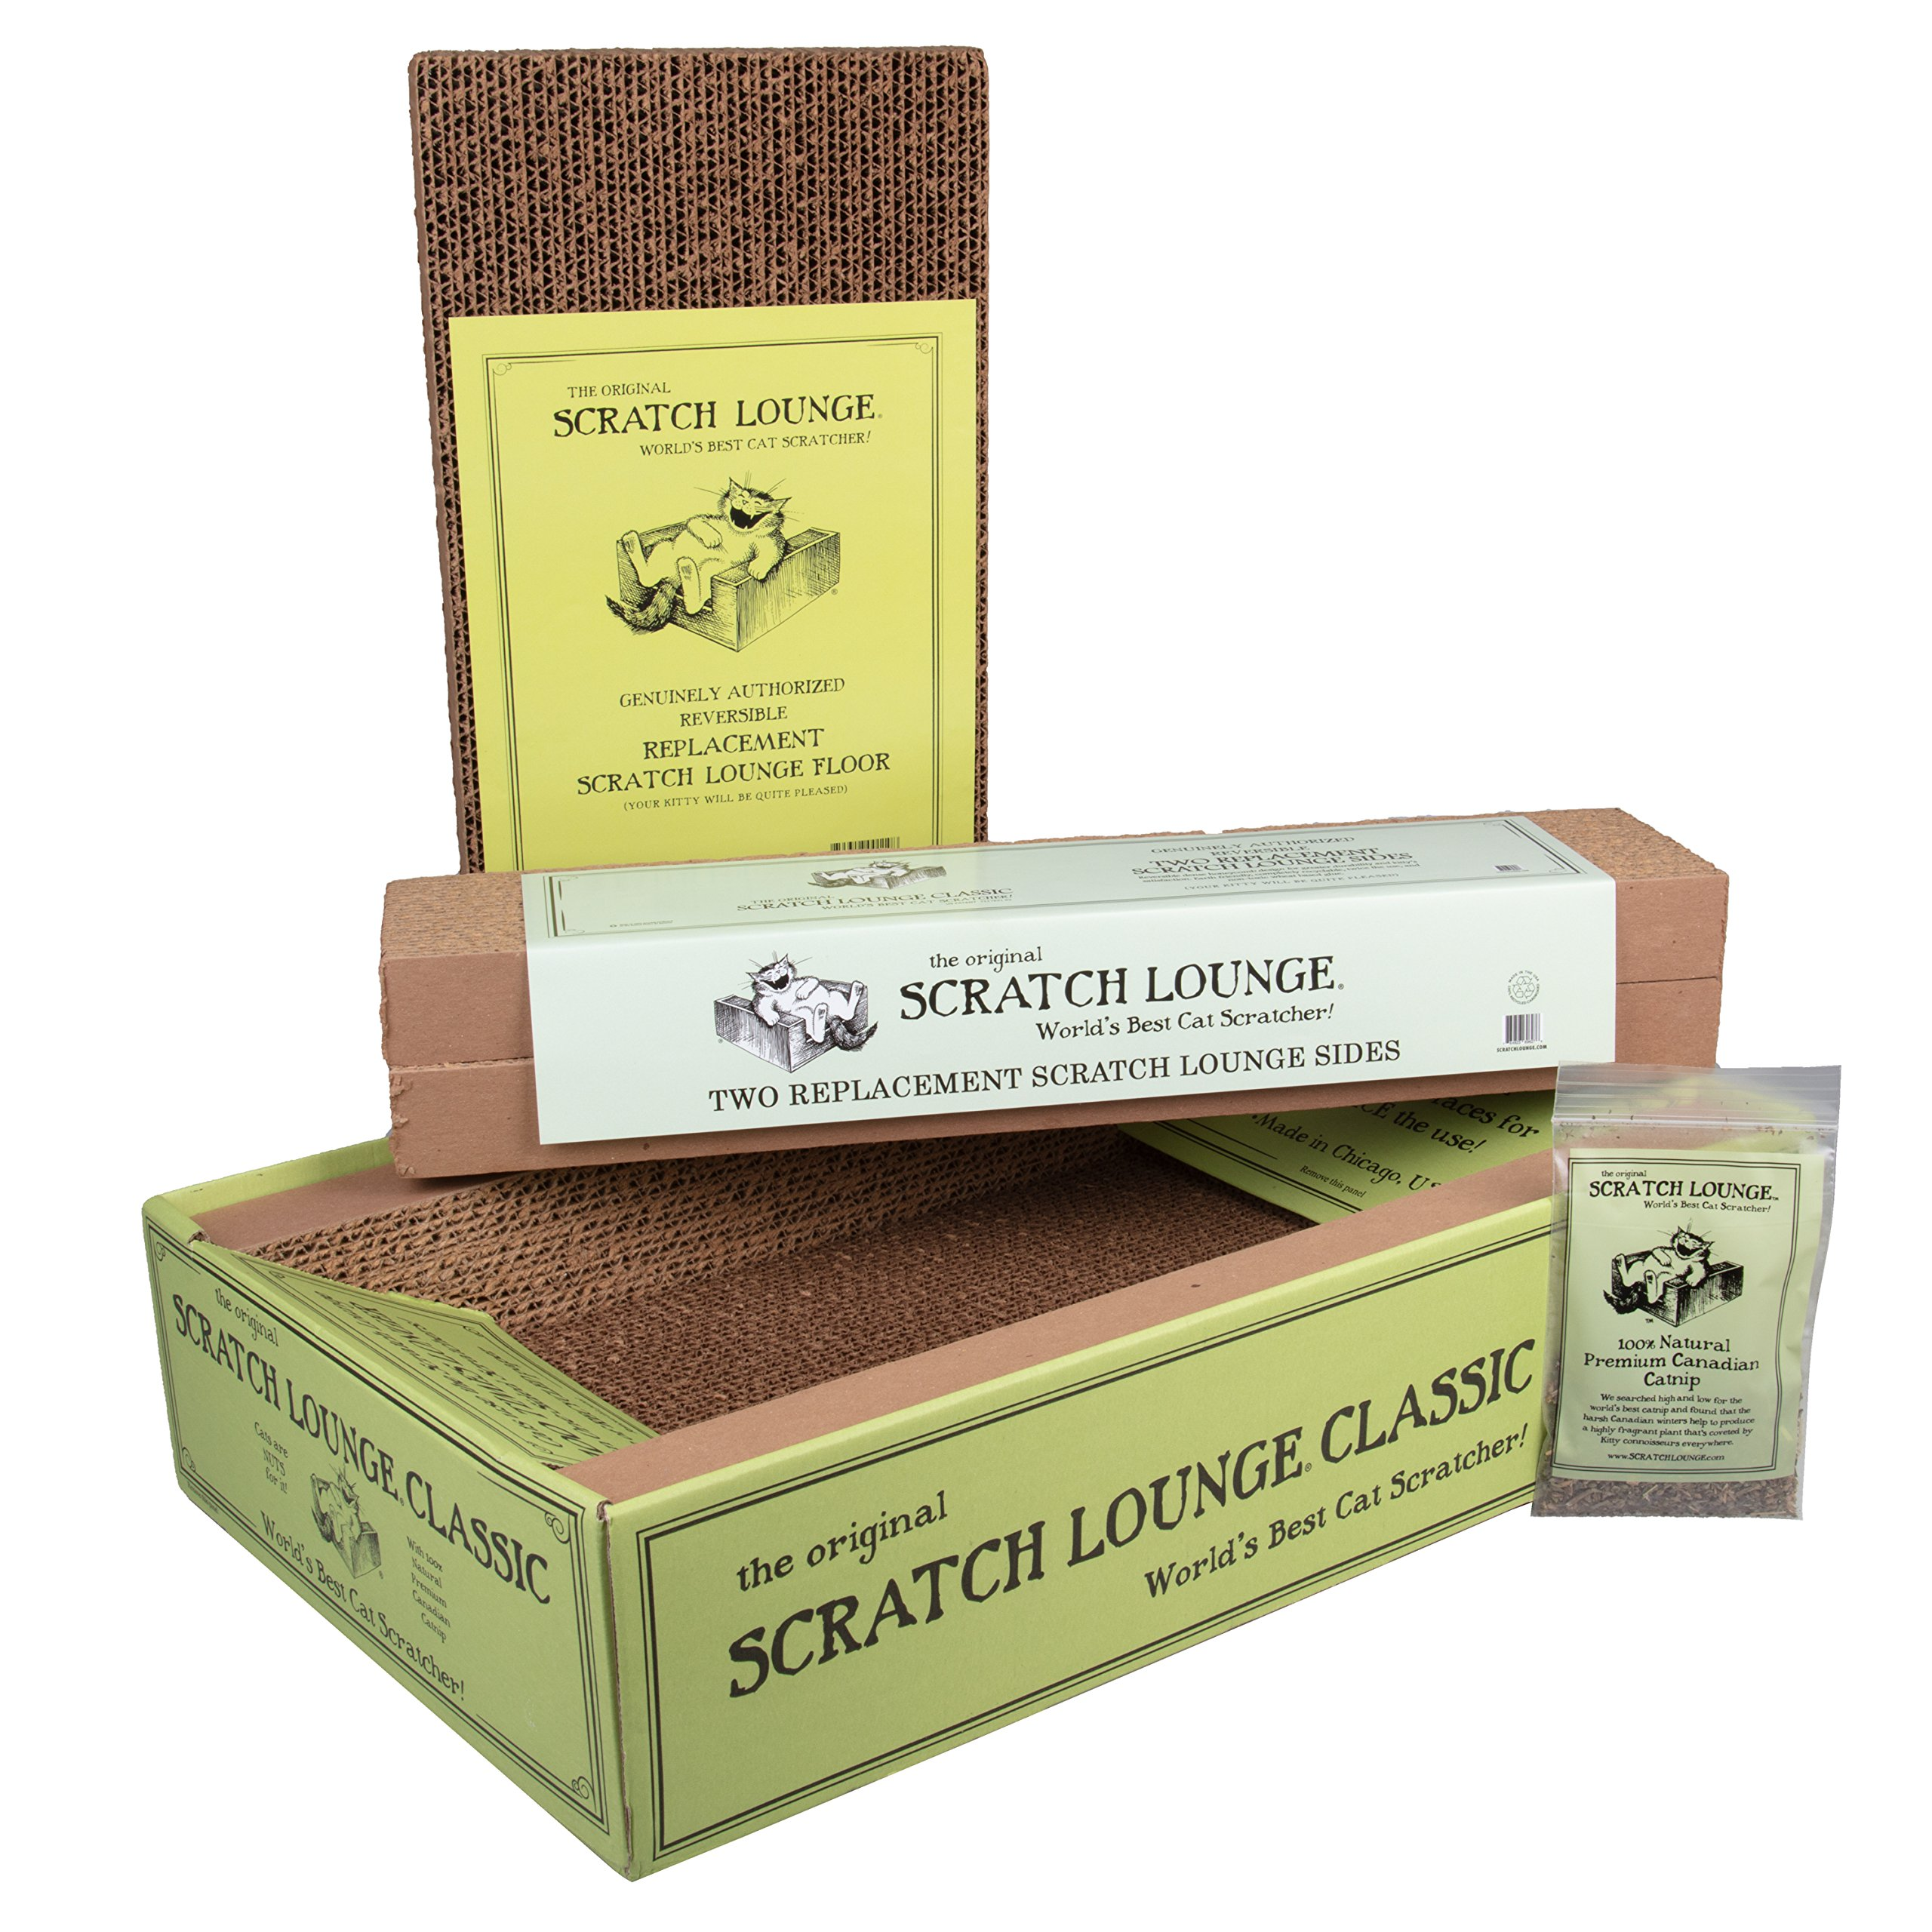 Scratch Lounge The Original Reversible Cardboard Cat Scratcher with Floor and Side Replacement Refills and Catnip